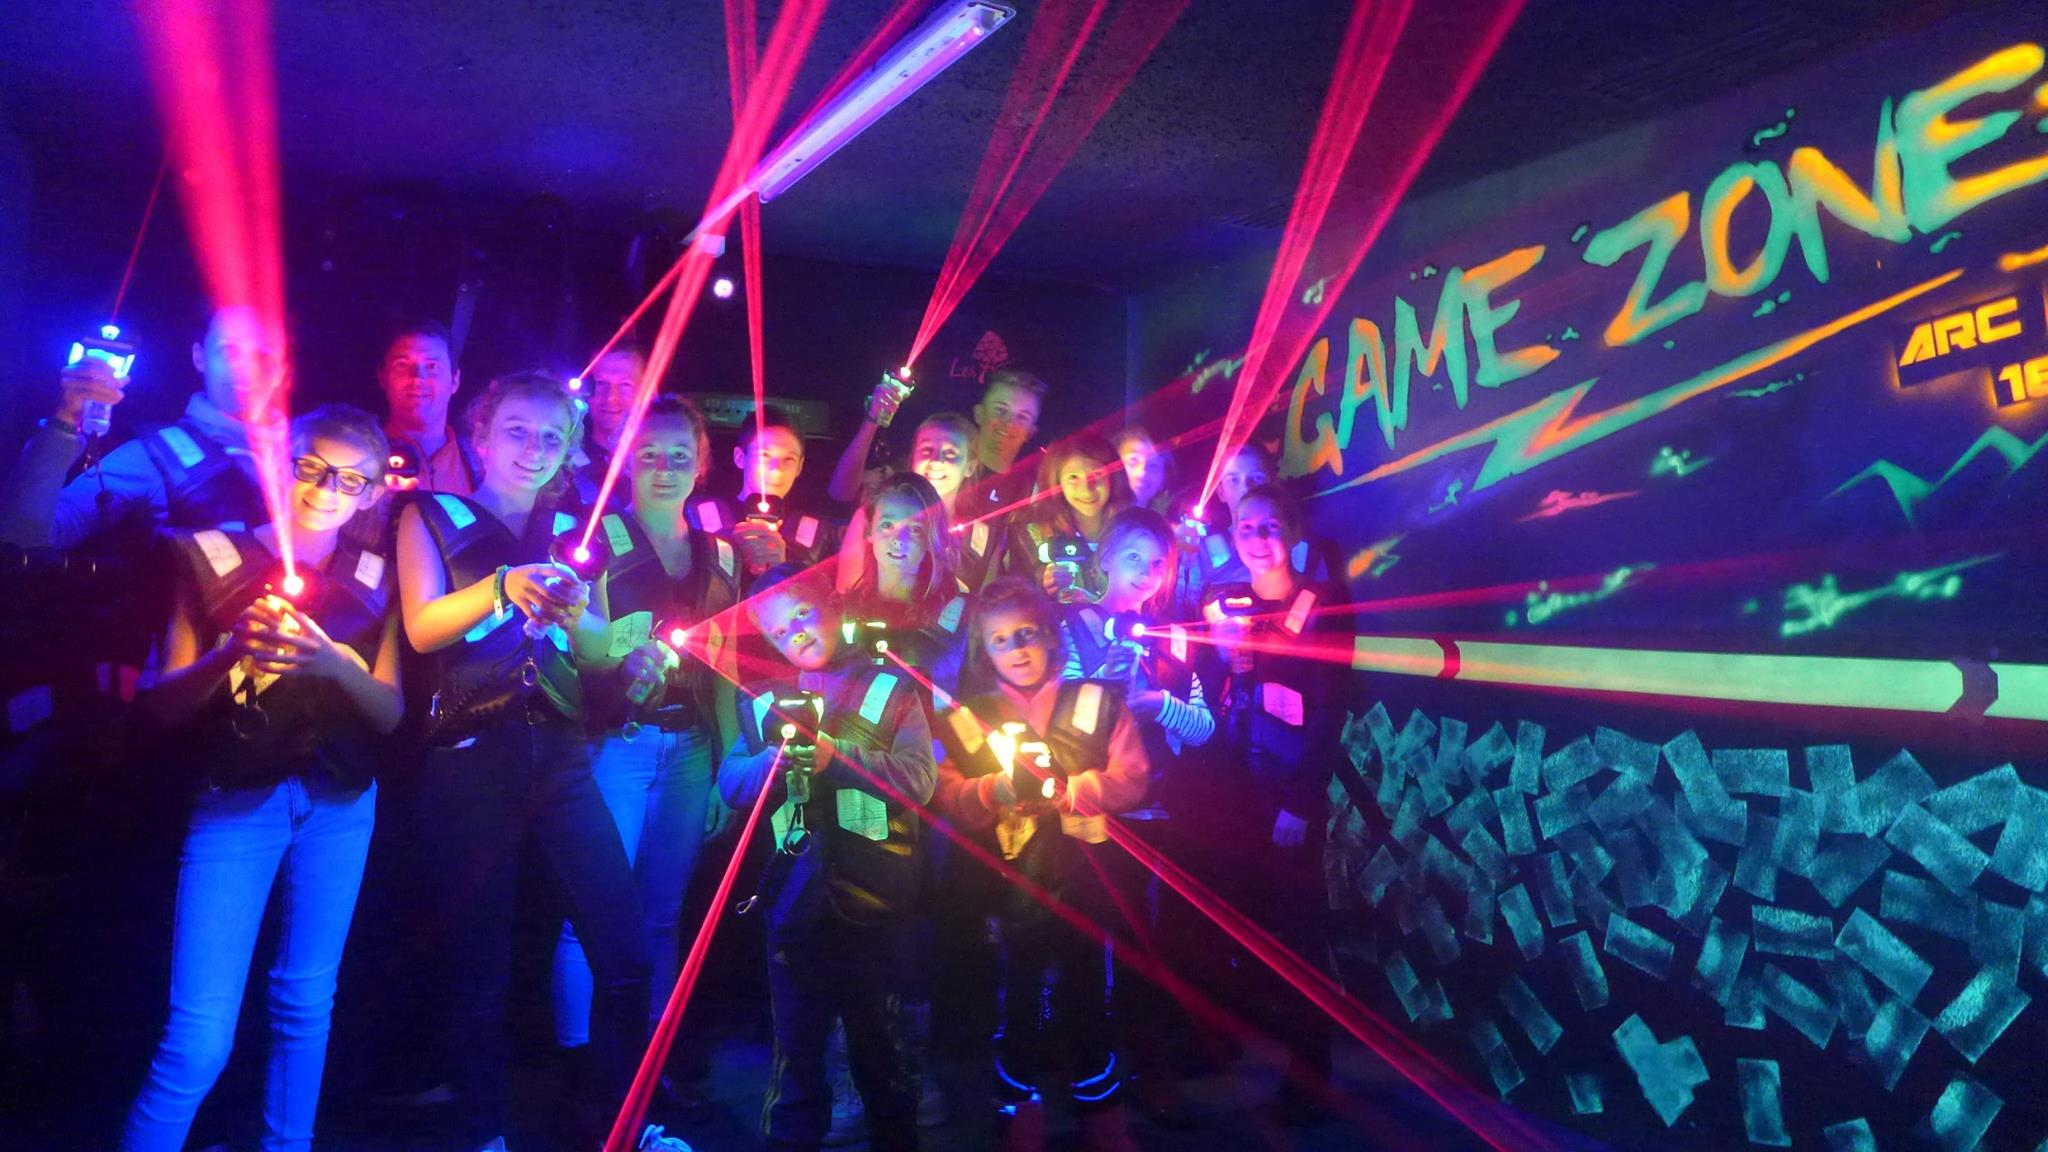 LASER GAME ARC 1800 CHEZ BOUBOU14